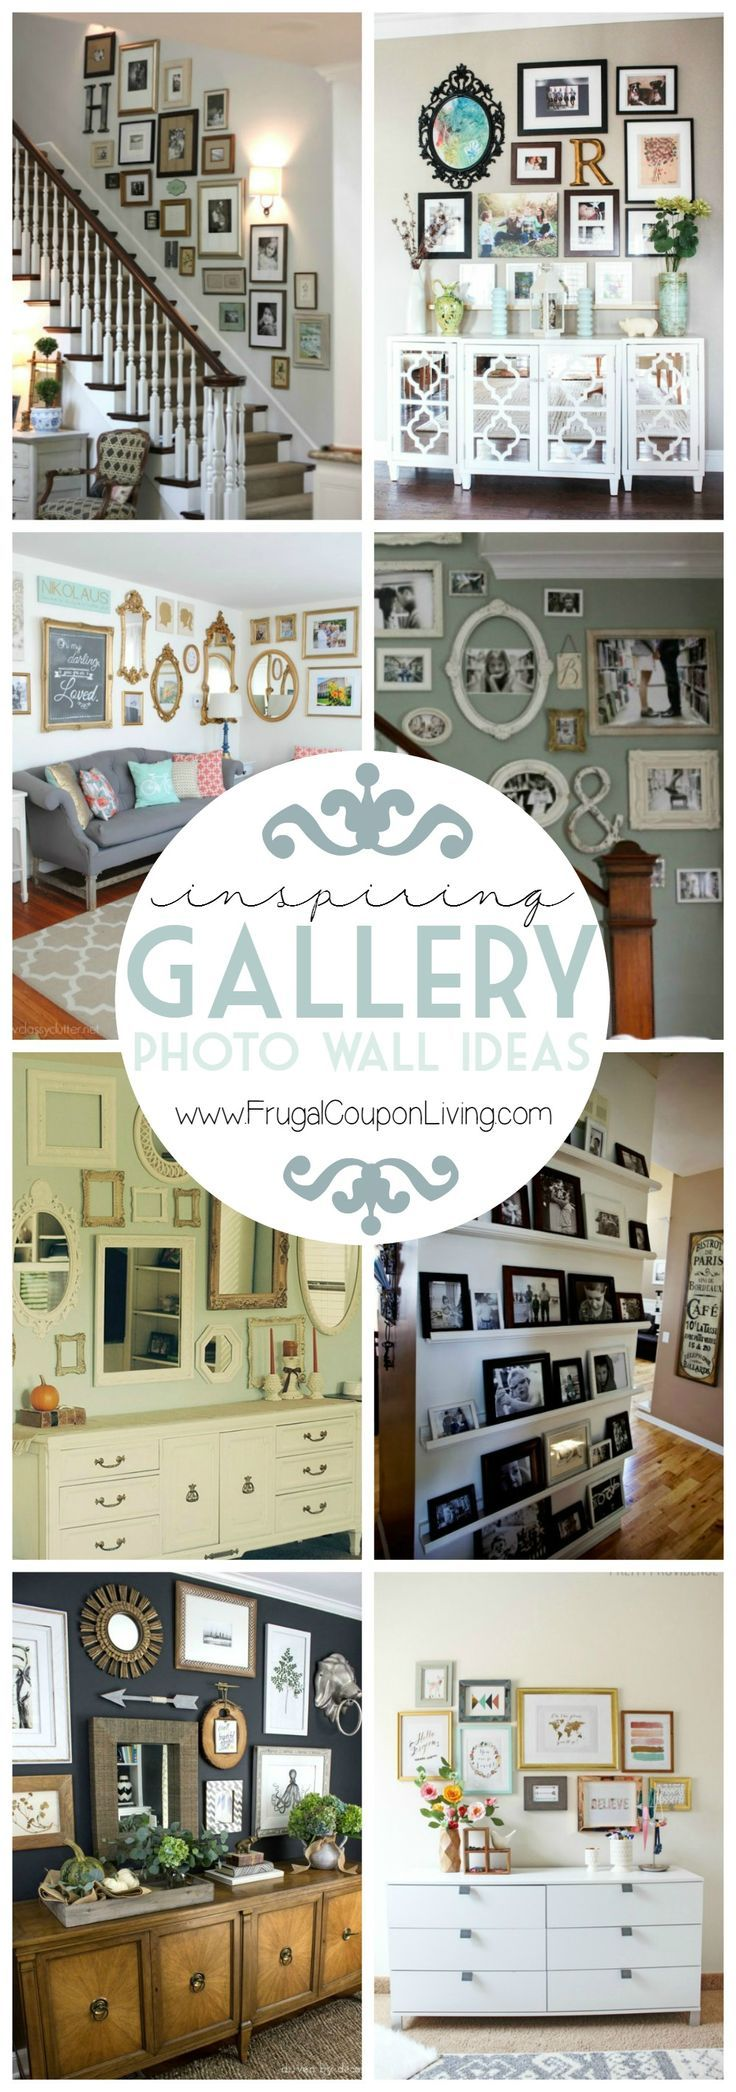 Gallery Wall Ideas and Inspiration for PIcture Frame Displays.  Family picture ...